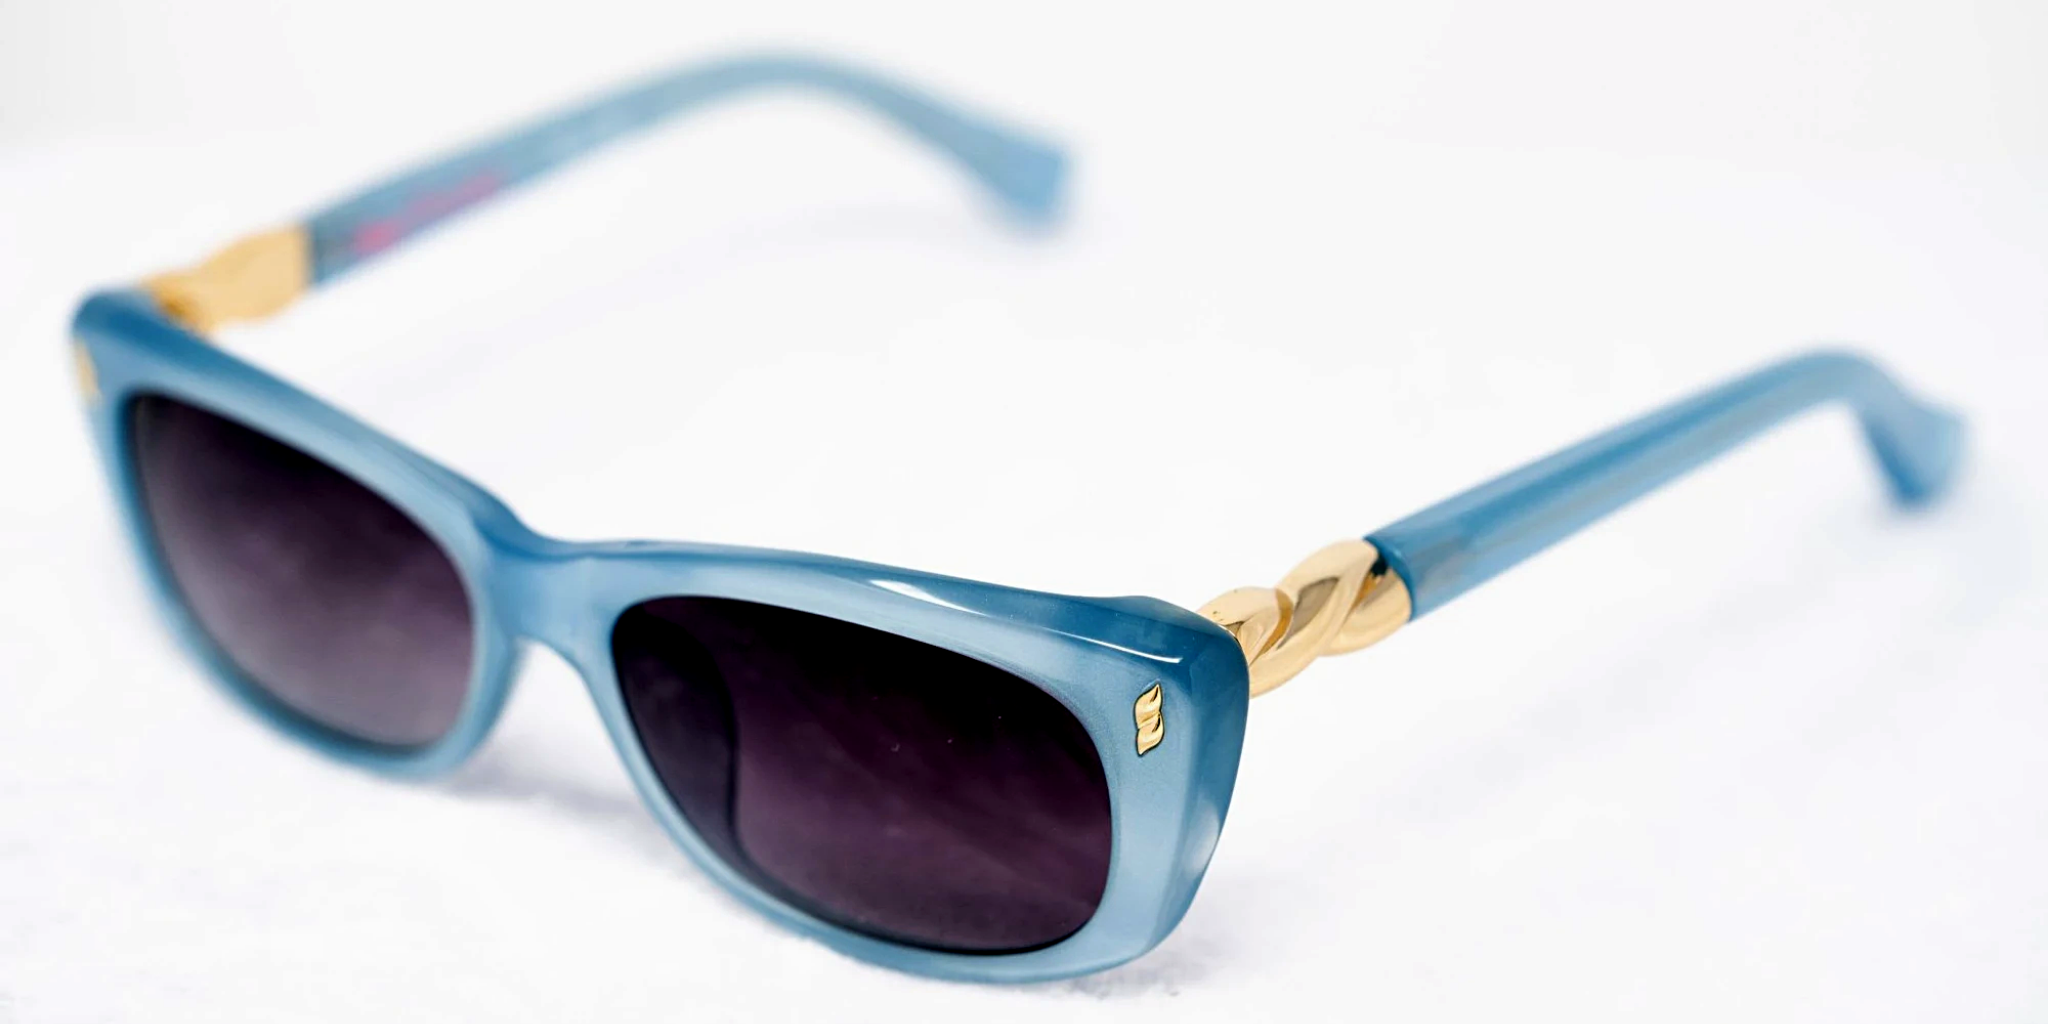 Agent Provocateur Sunglasses Rectangle Blue and Grey